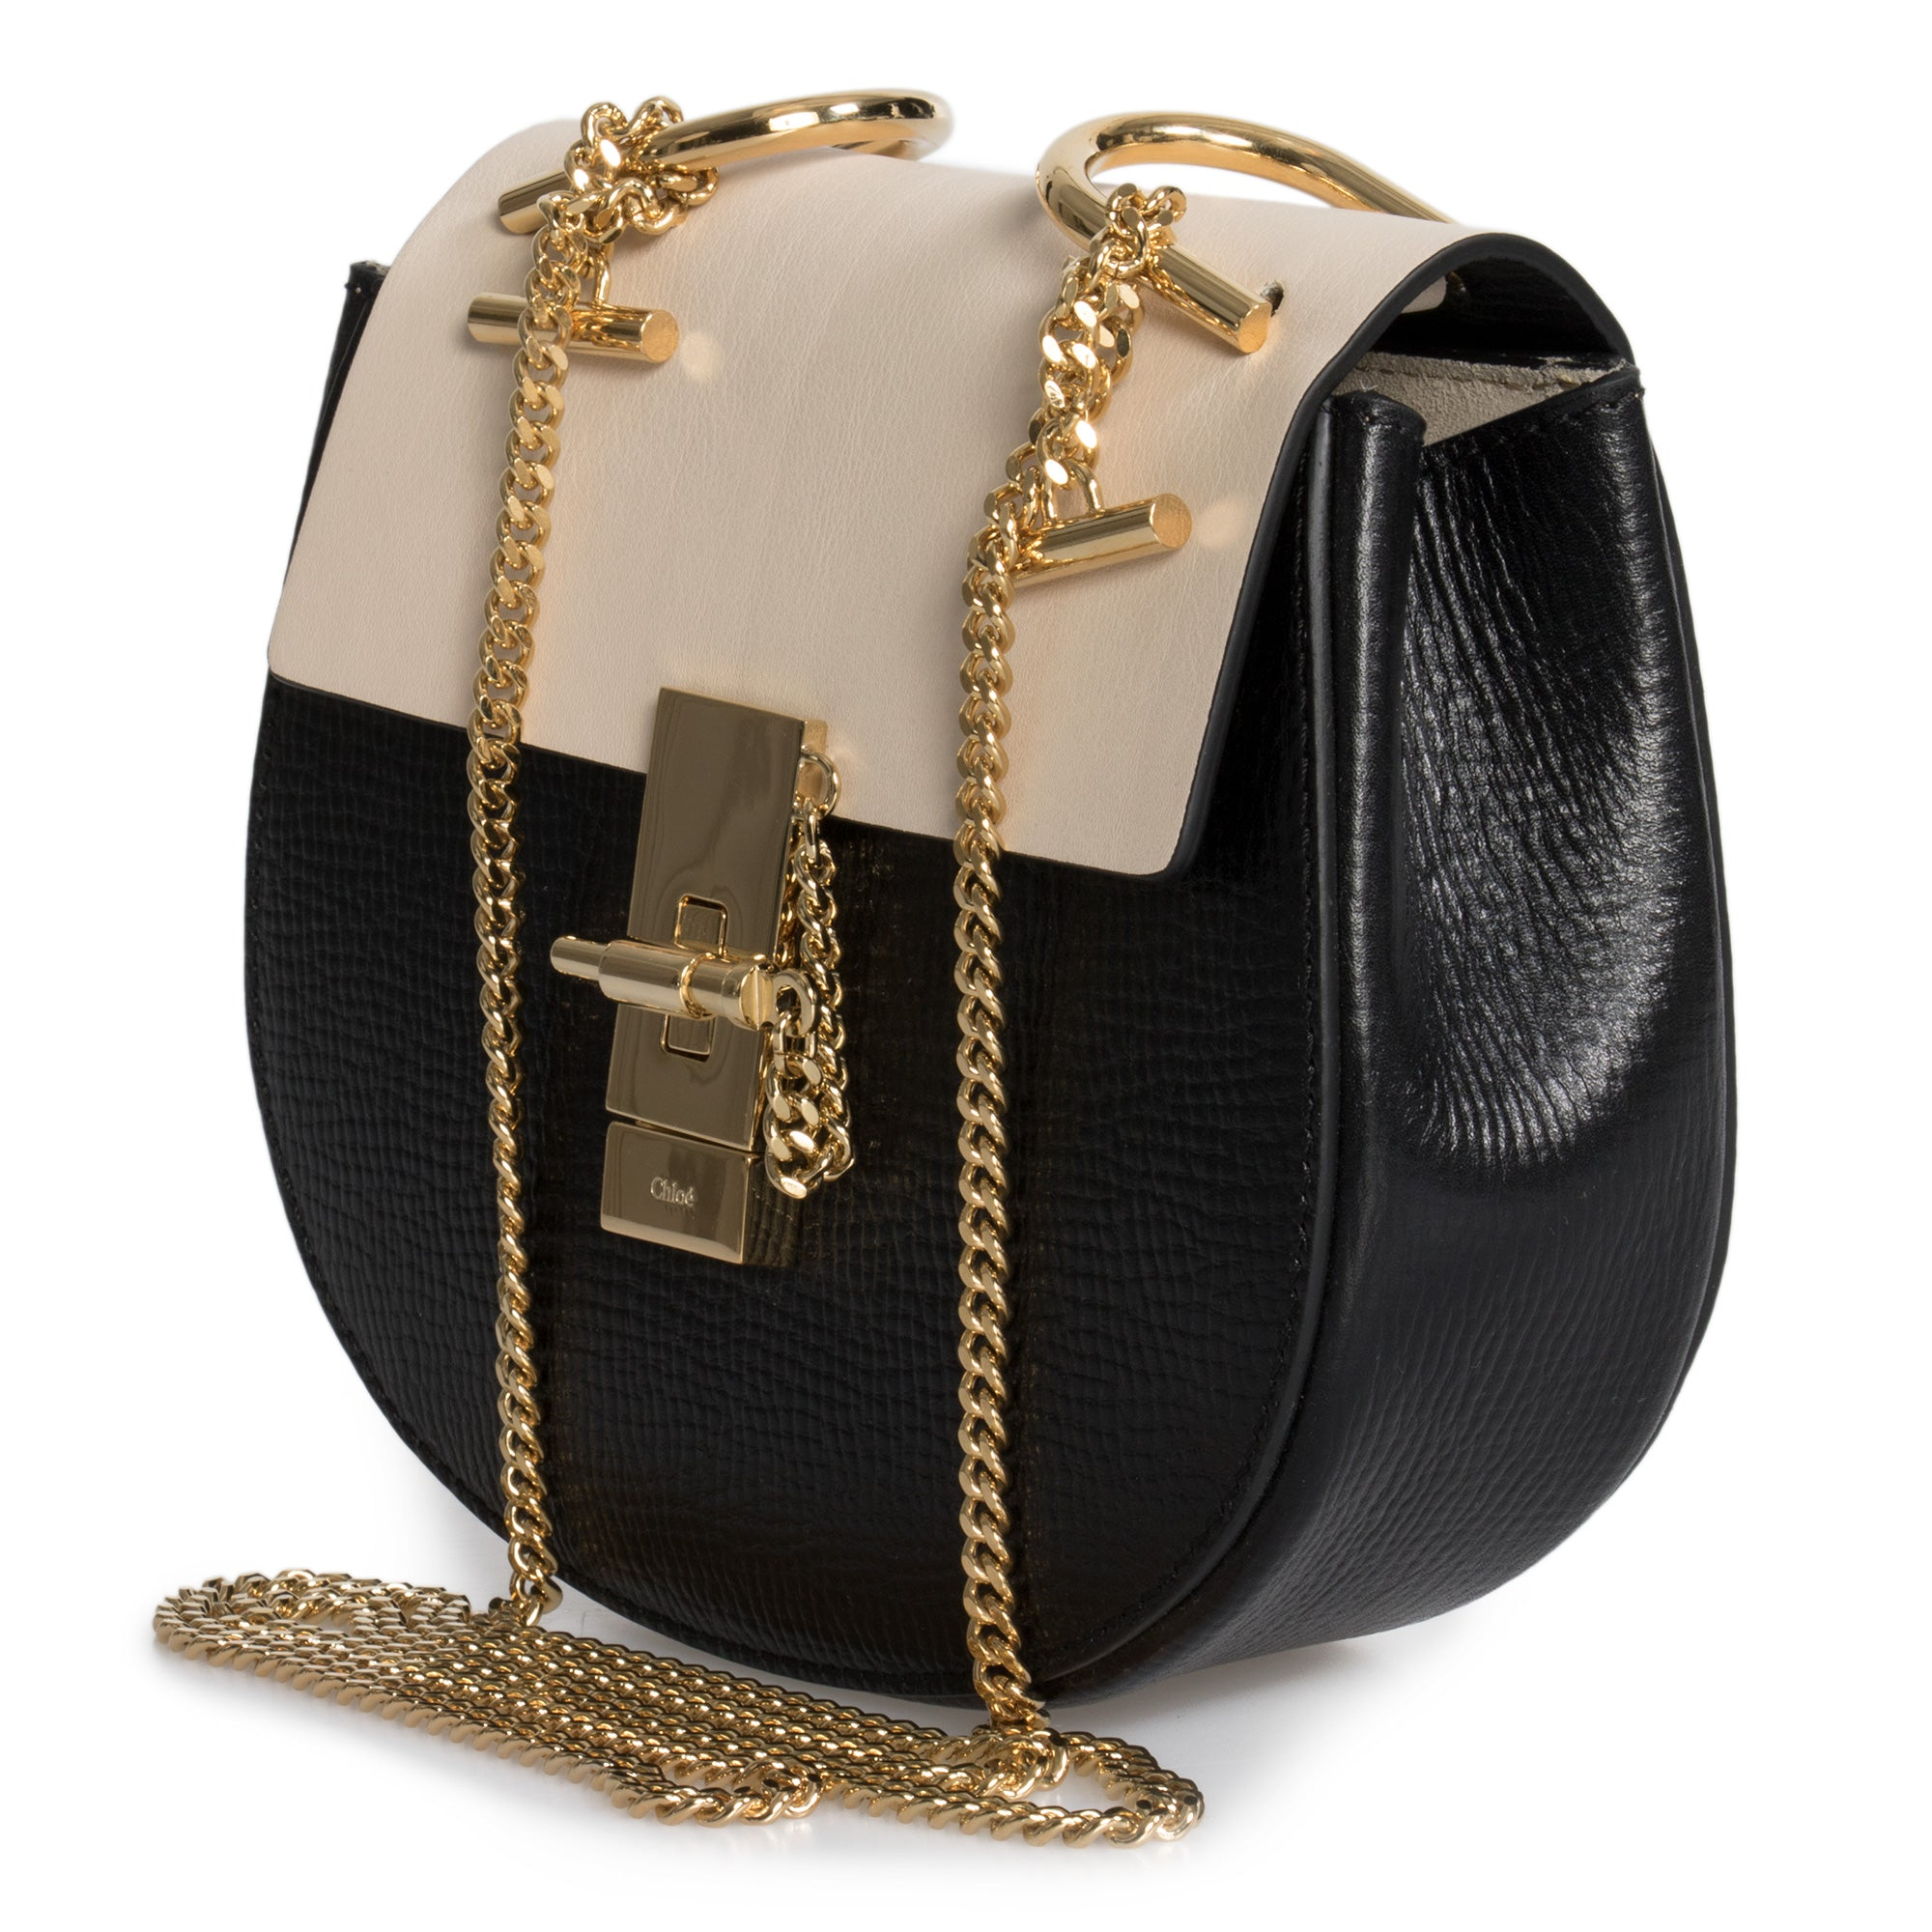 Chloe Mini Drew Bag In Small Grain & Smooth Calfskin Leather